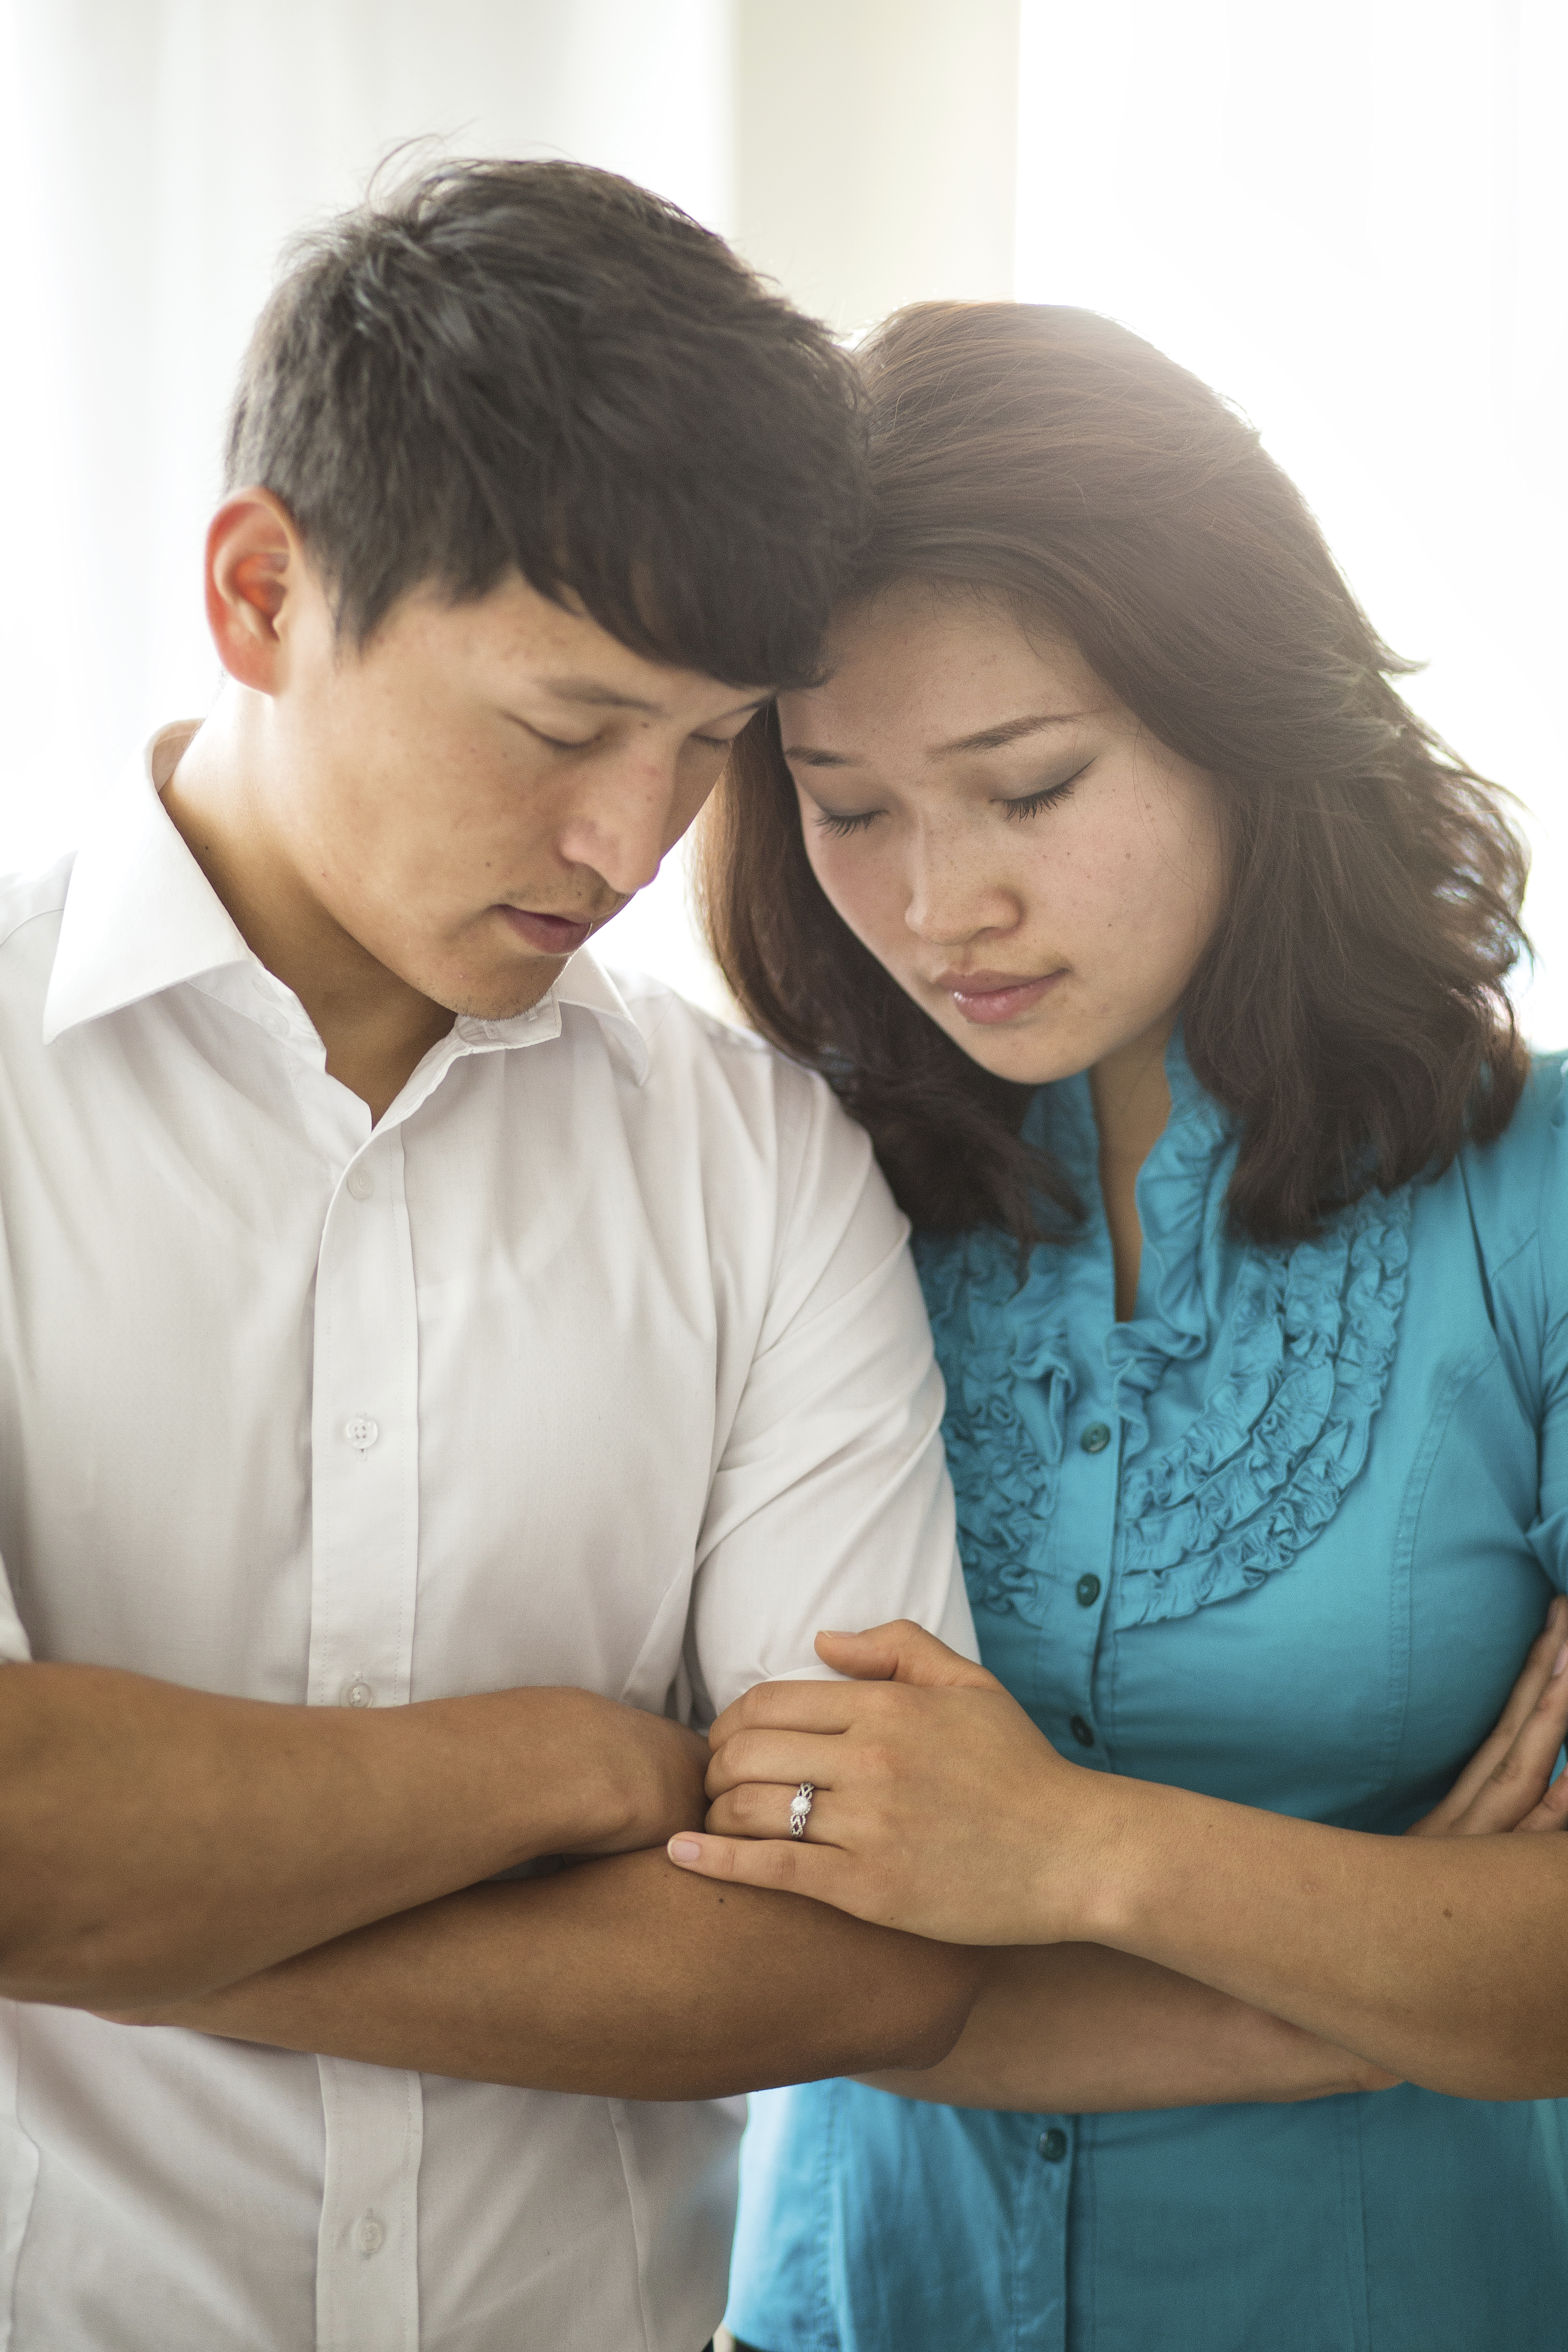 A young couple from Mongolia standing and praying together.